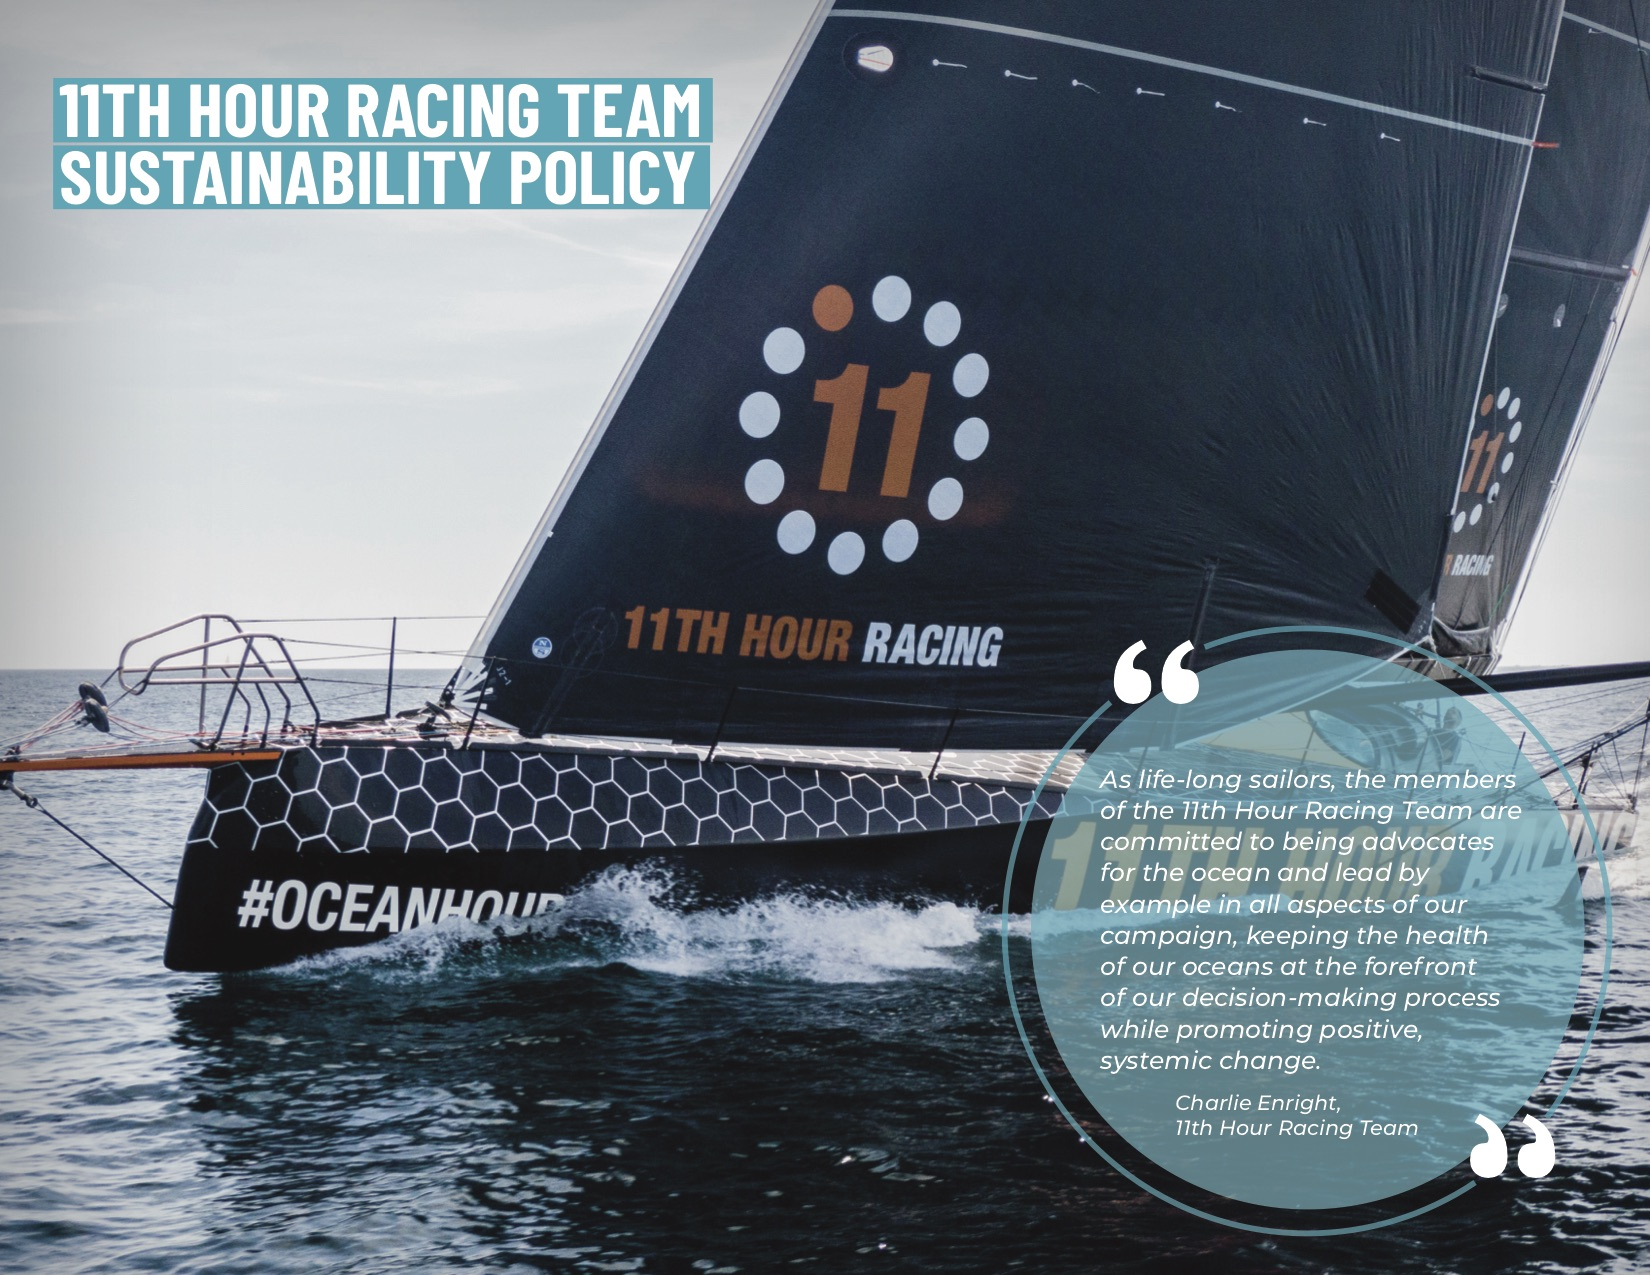 191024-11th-hour-race-team-sustainability-policy